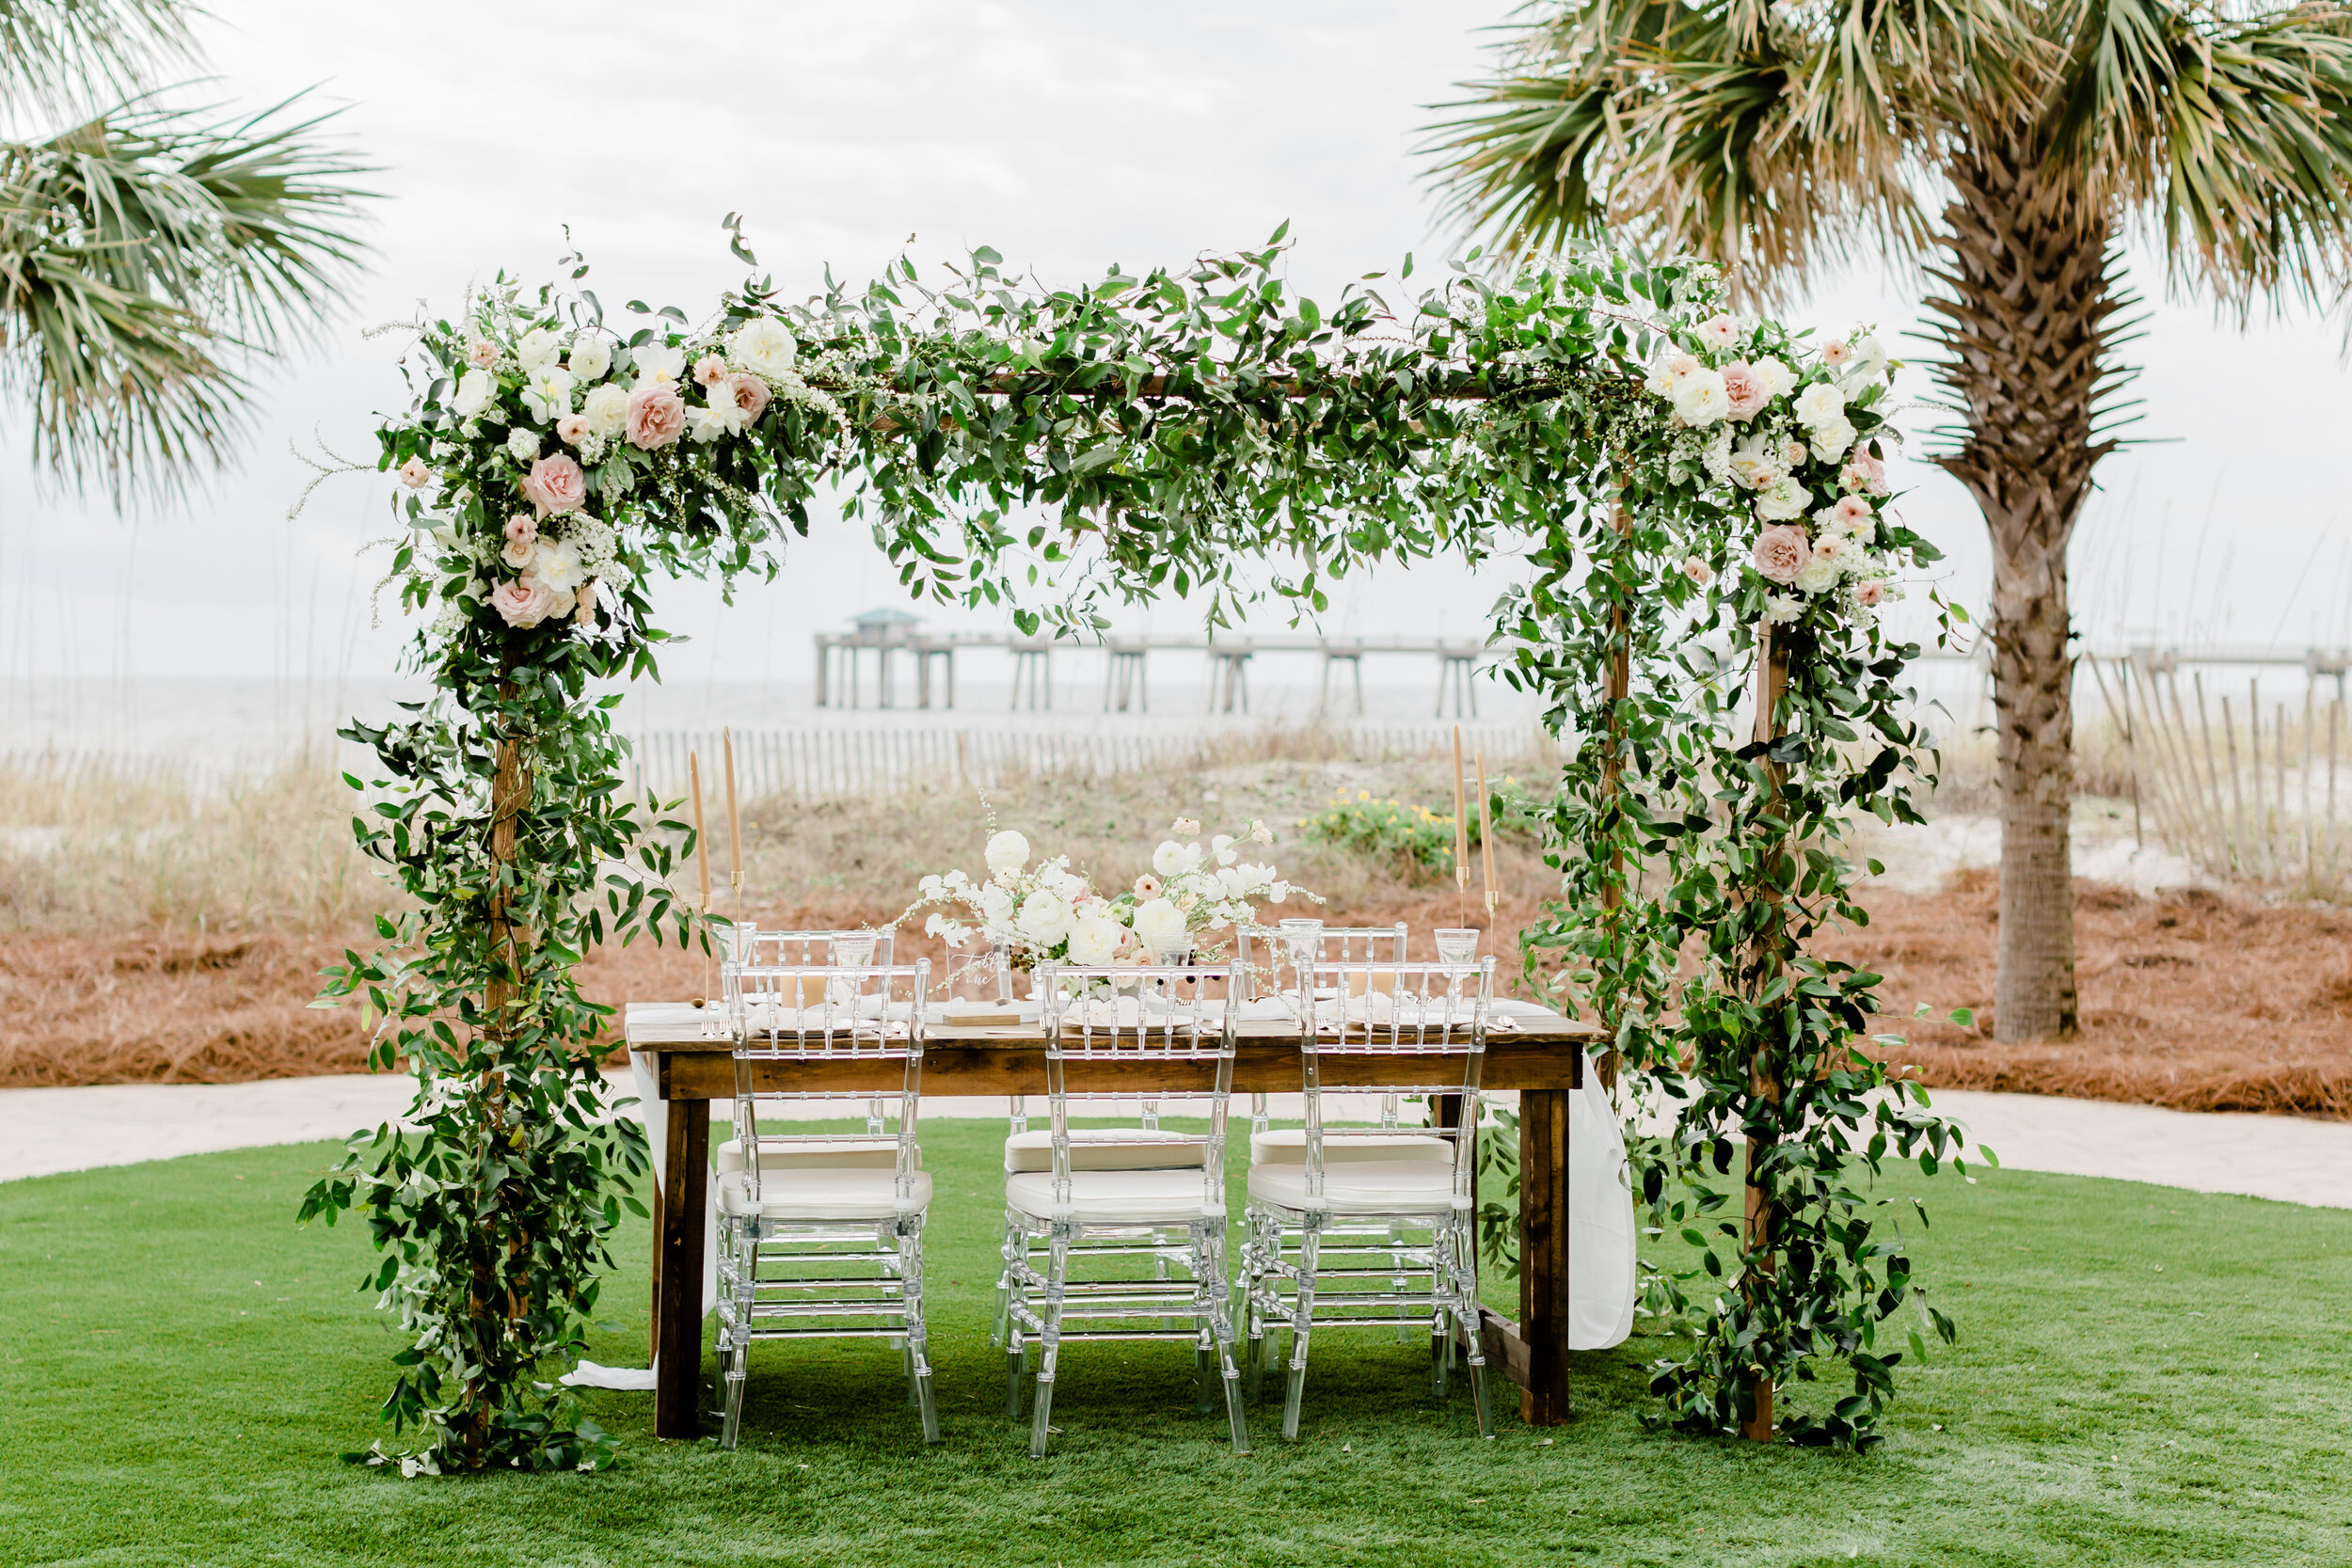 pretty and simple dreamy rustic outdoor wedding table design idea